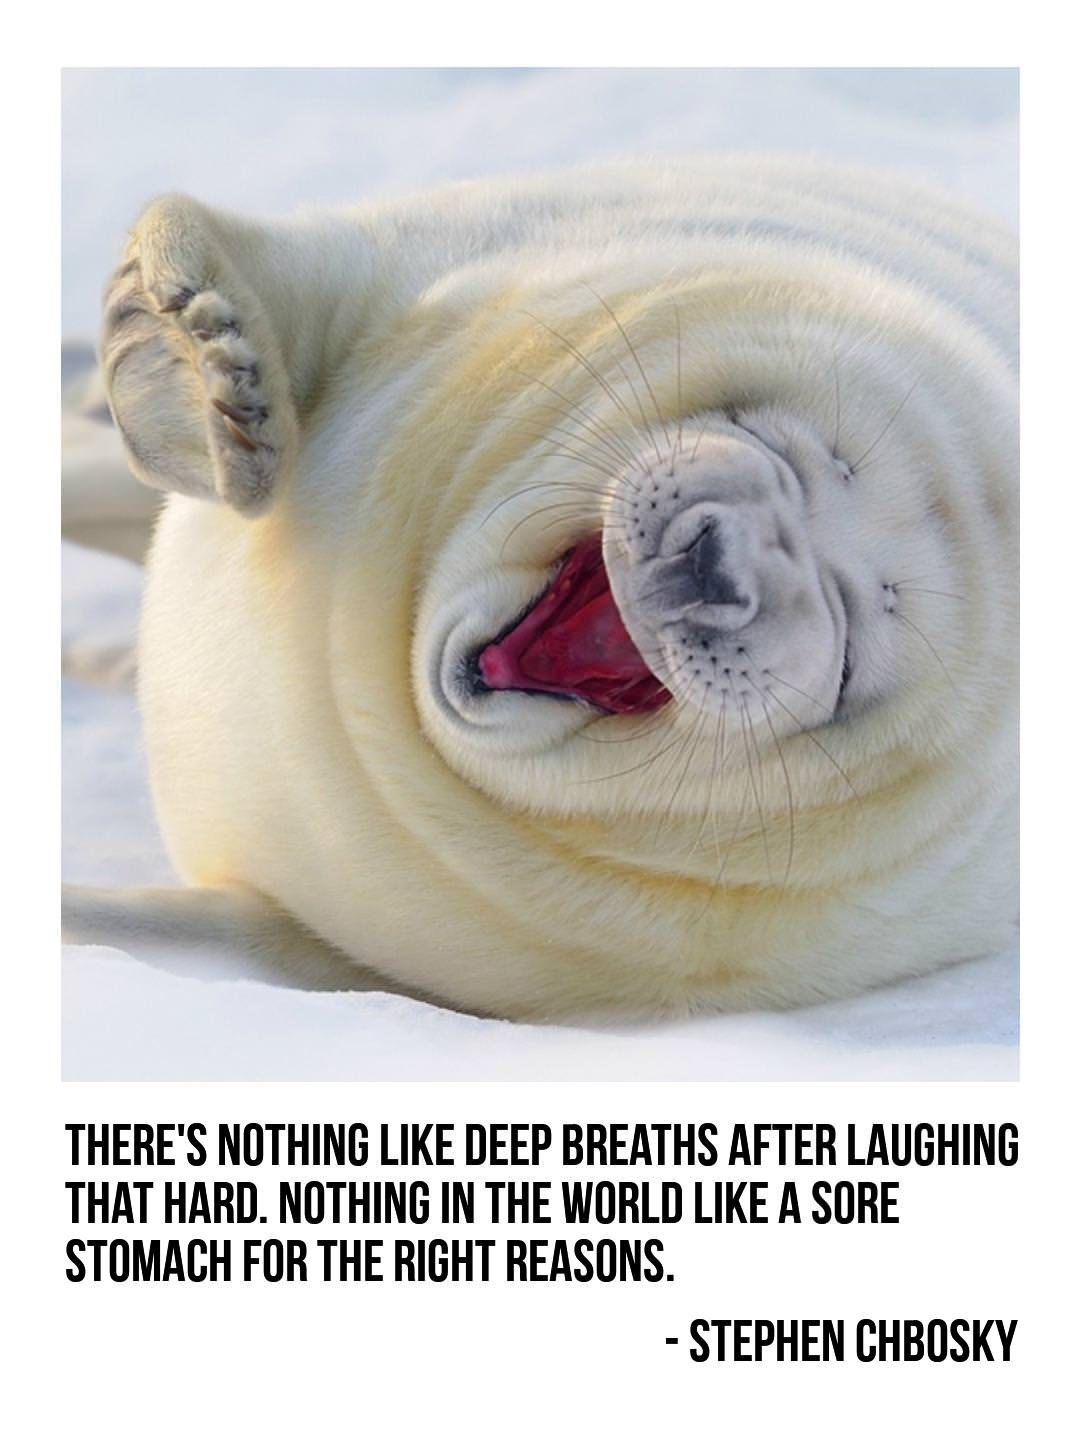 """There's nothing like deep breaths after laughing that hard."" – Stephen Chbosky [1080×1440] [OC]"